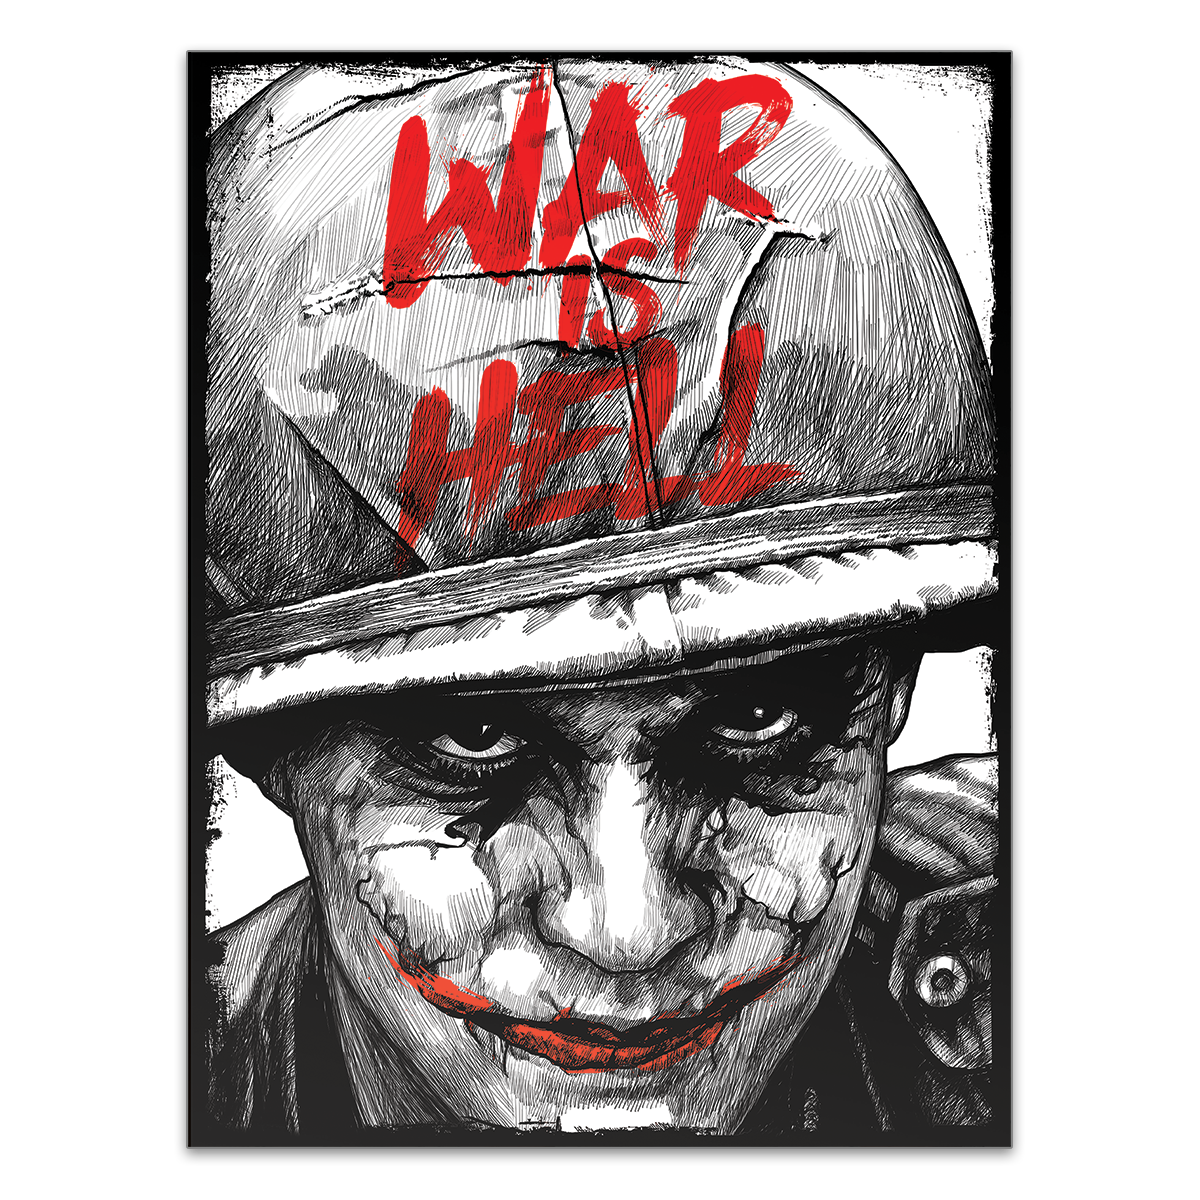 war is hell War is hell', 'grant stood by me when i was crazy, and i stood by him when he was drunk, and now we stand by each other', and 'i think i know what military fame is to be killed on the field of battle and have your name misspelled in the newspapers'.